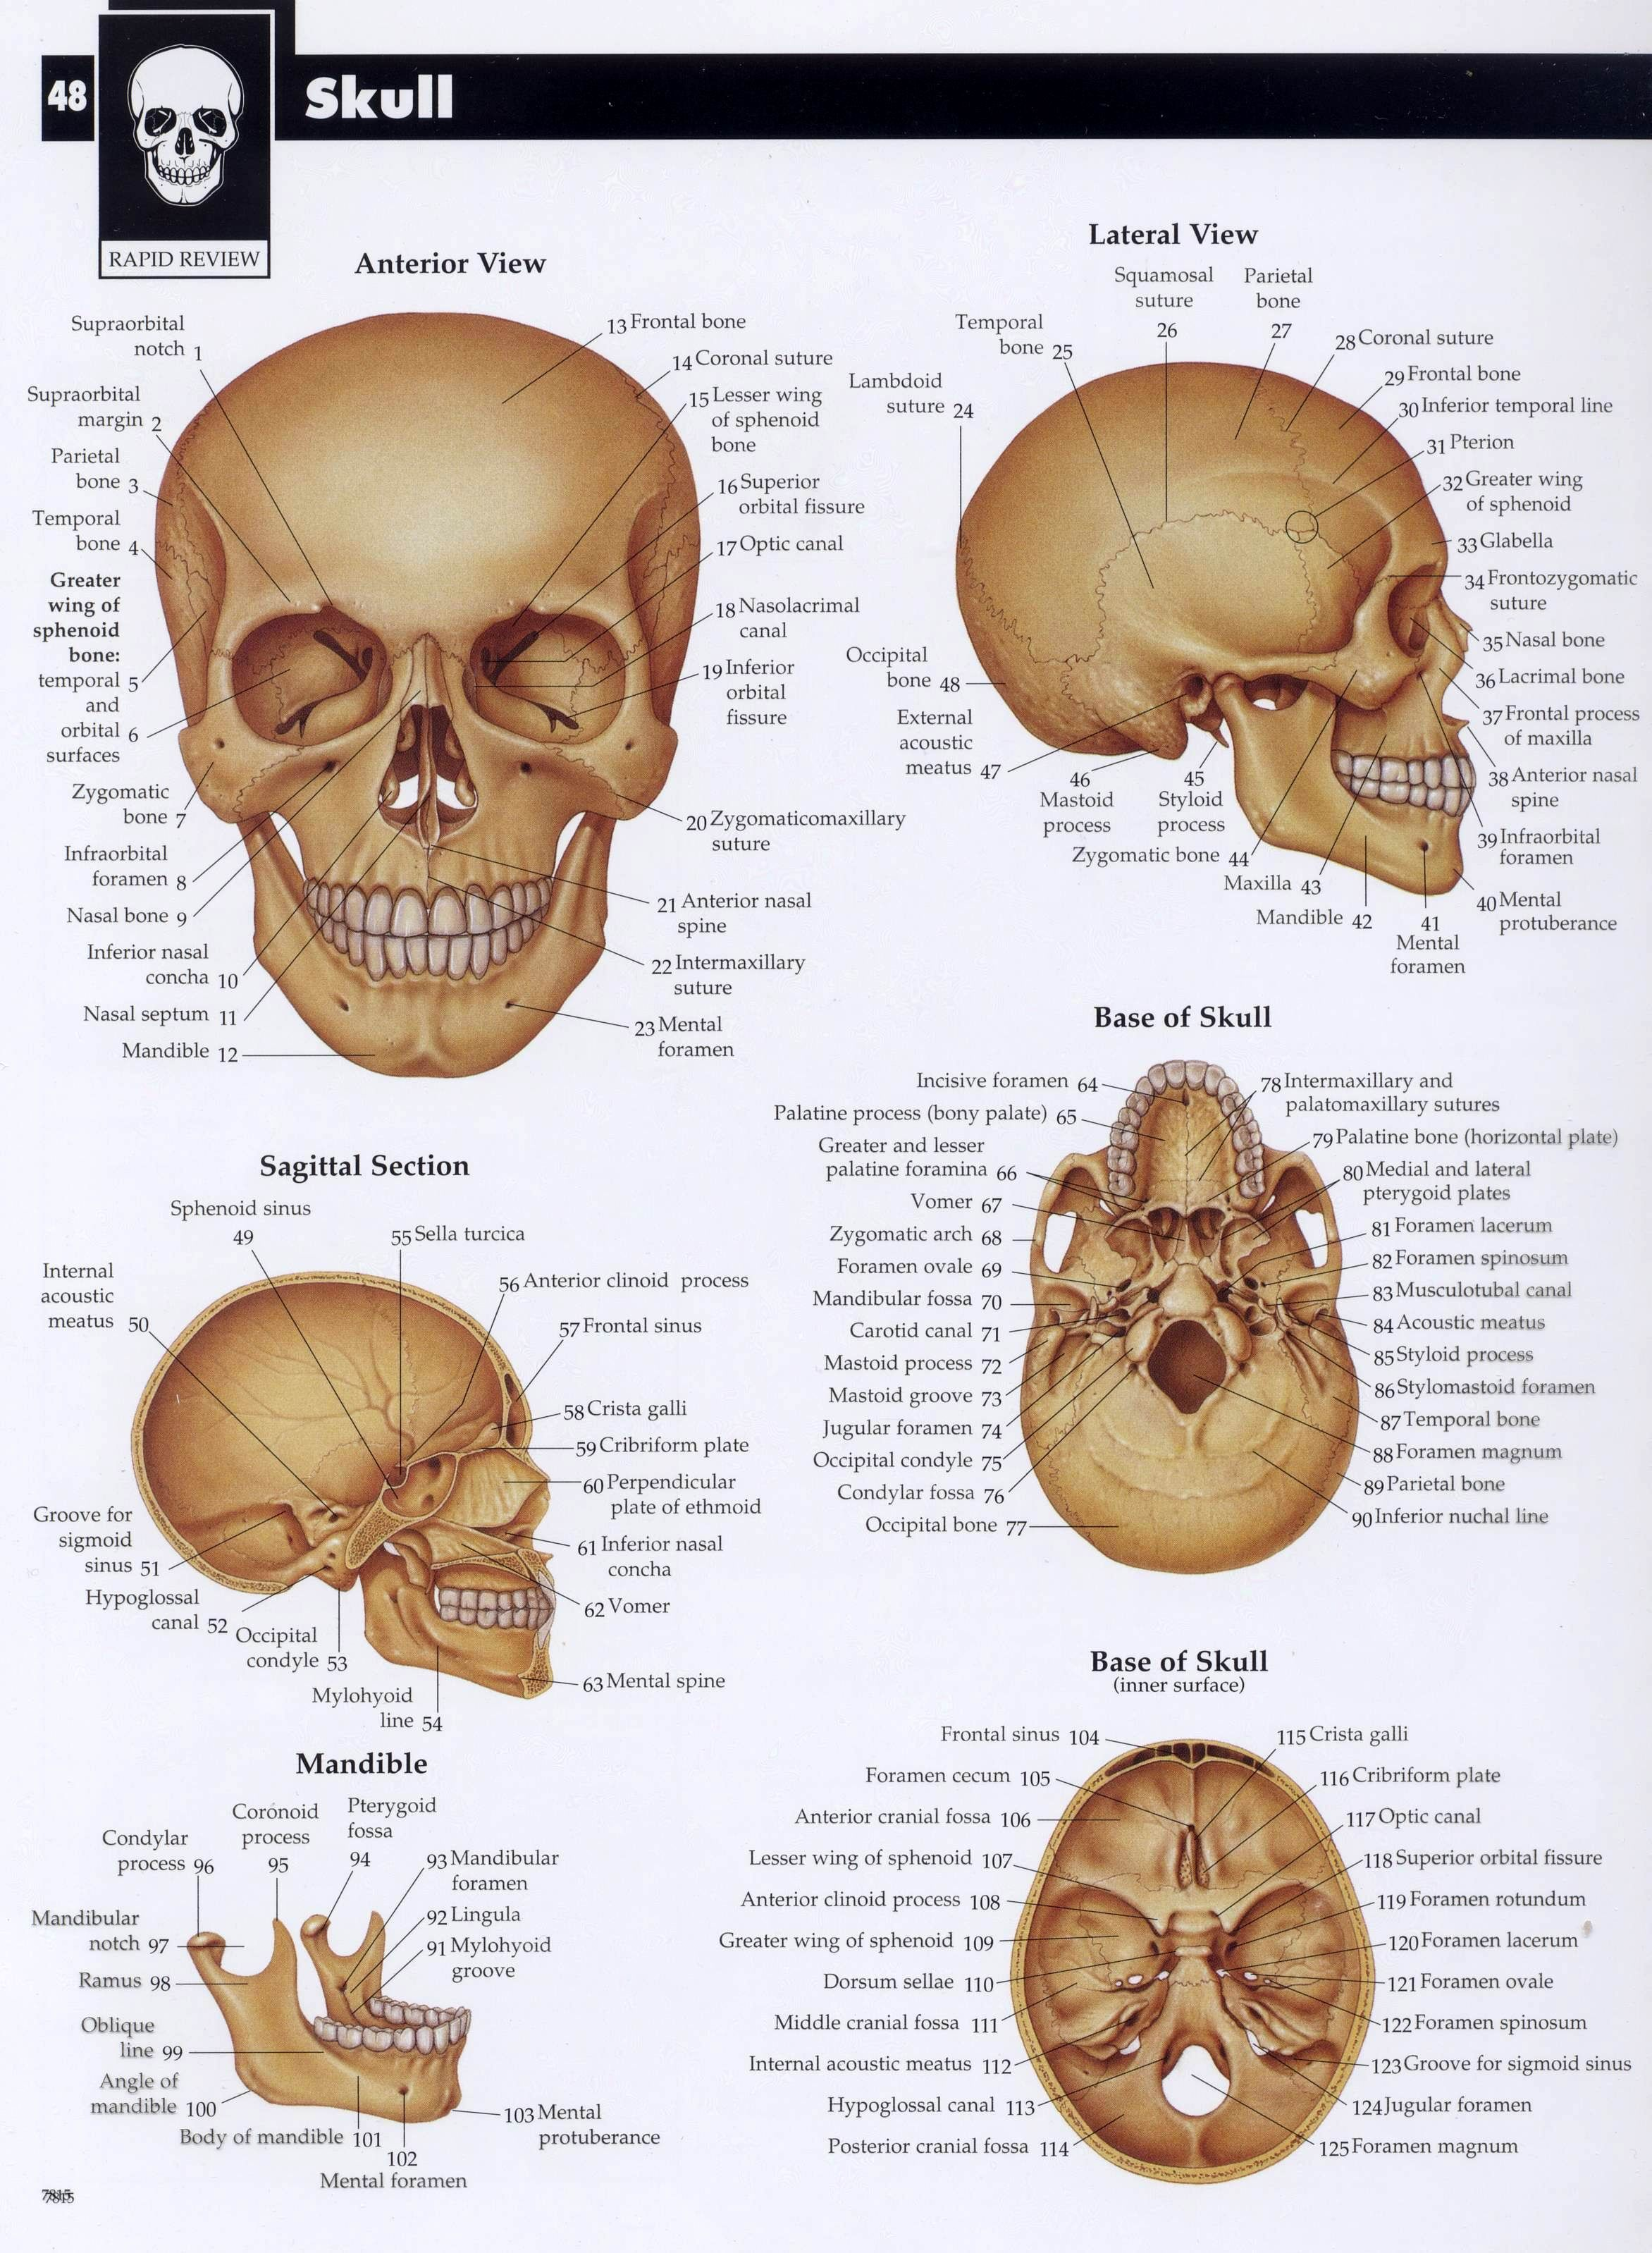 Pin by Michelle LeMieux on [] EDUCATION [] | Pinterest | Anatomy ...